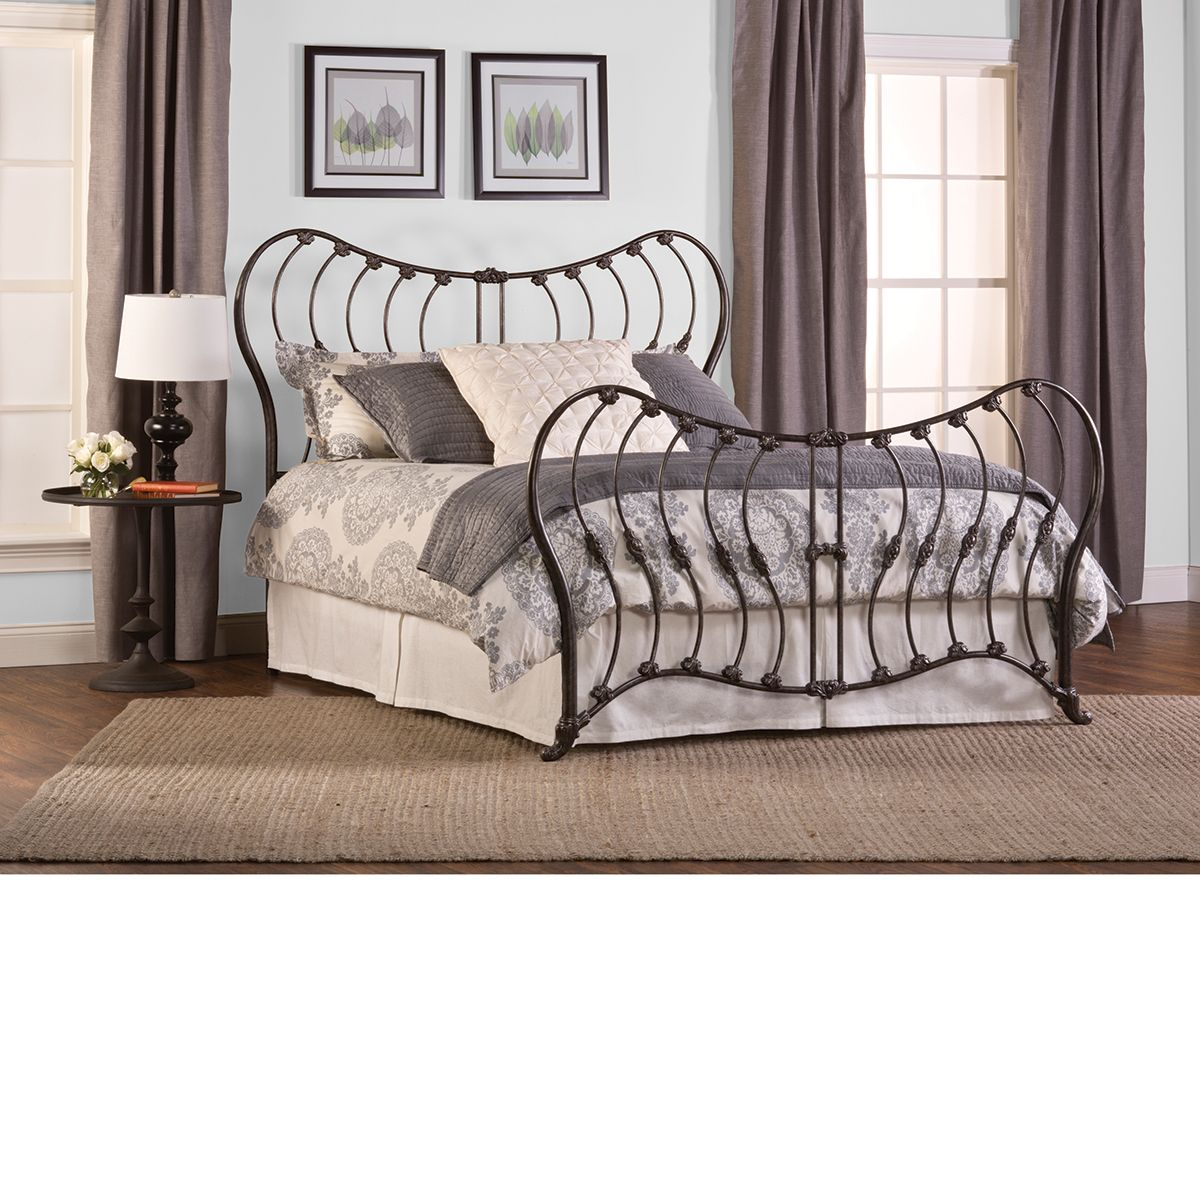 The Dump Furniture   CHARLOTTE The Exact Bed From Another Post About The  Bedding I Want